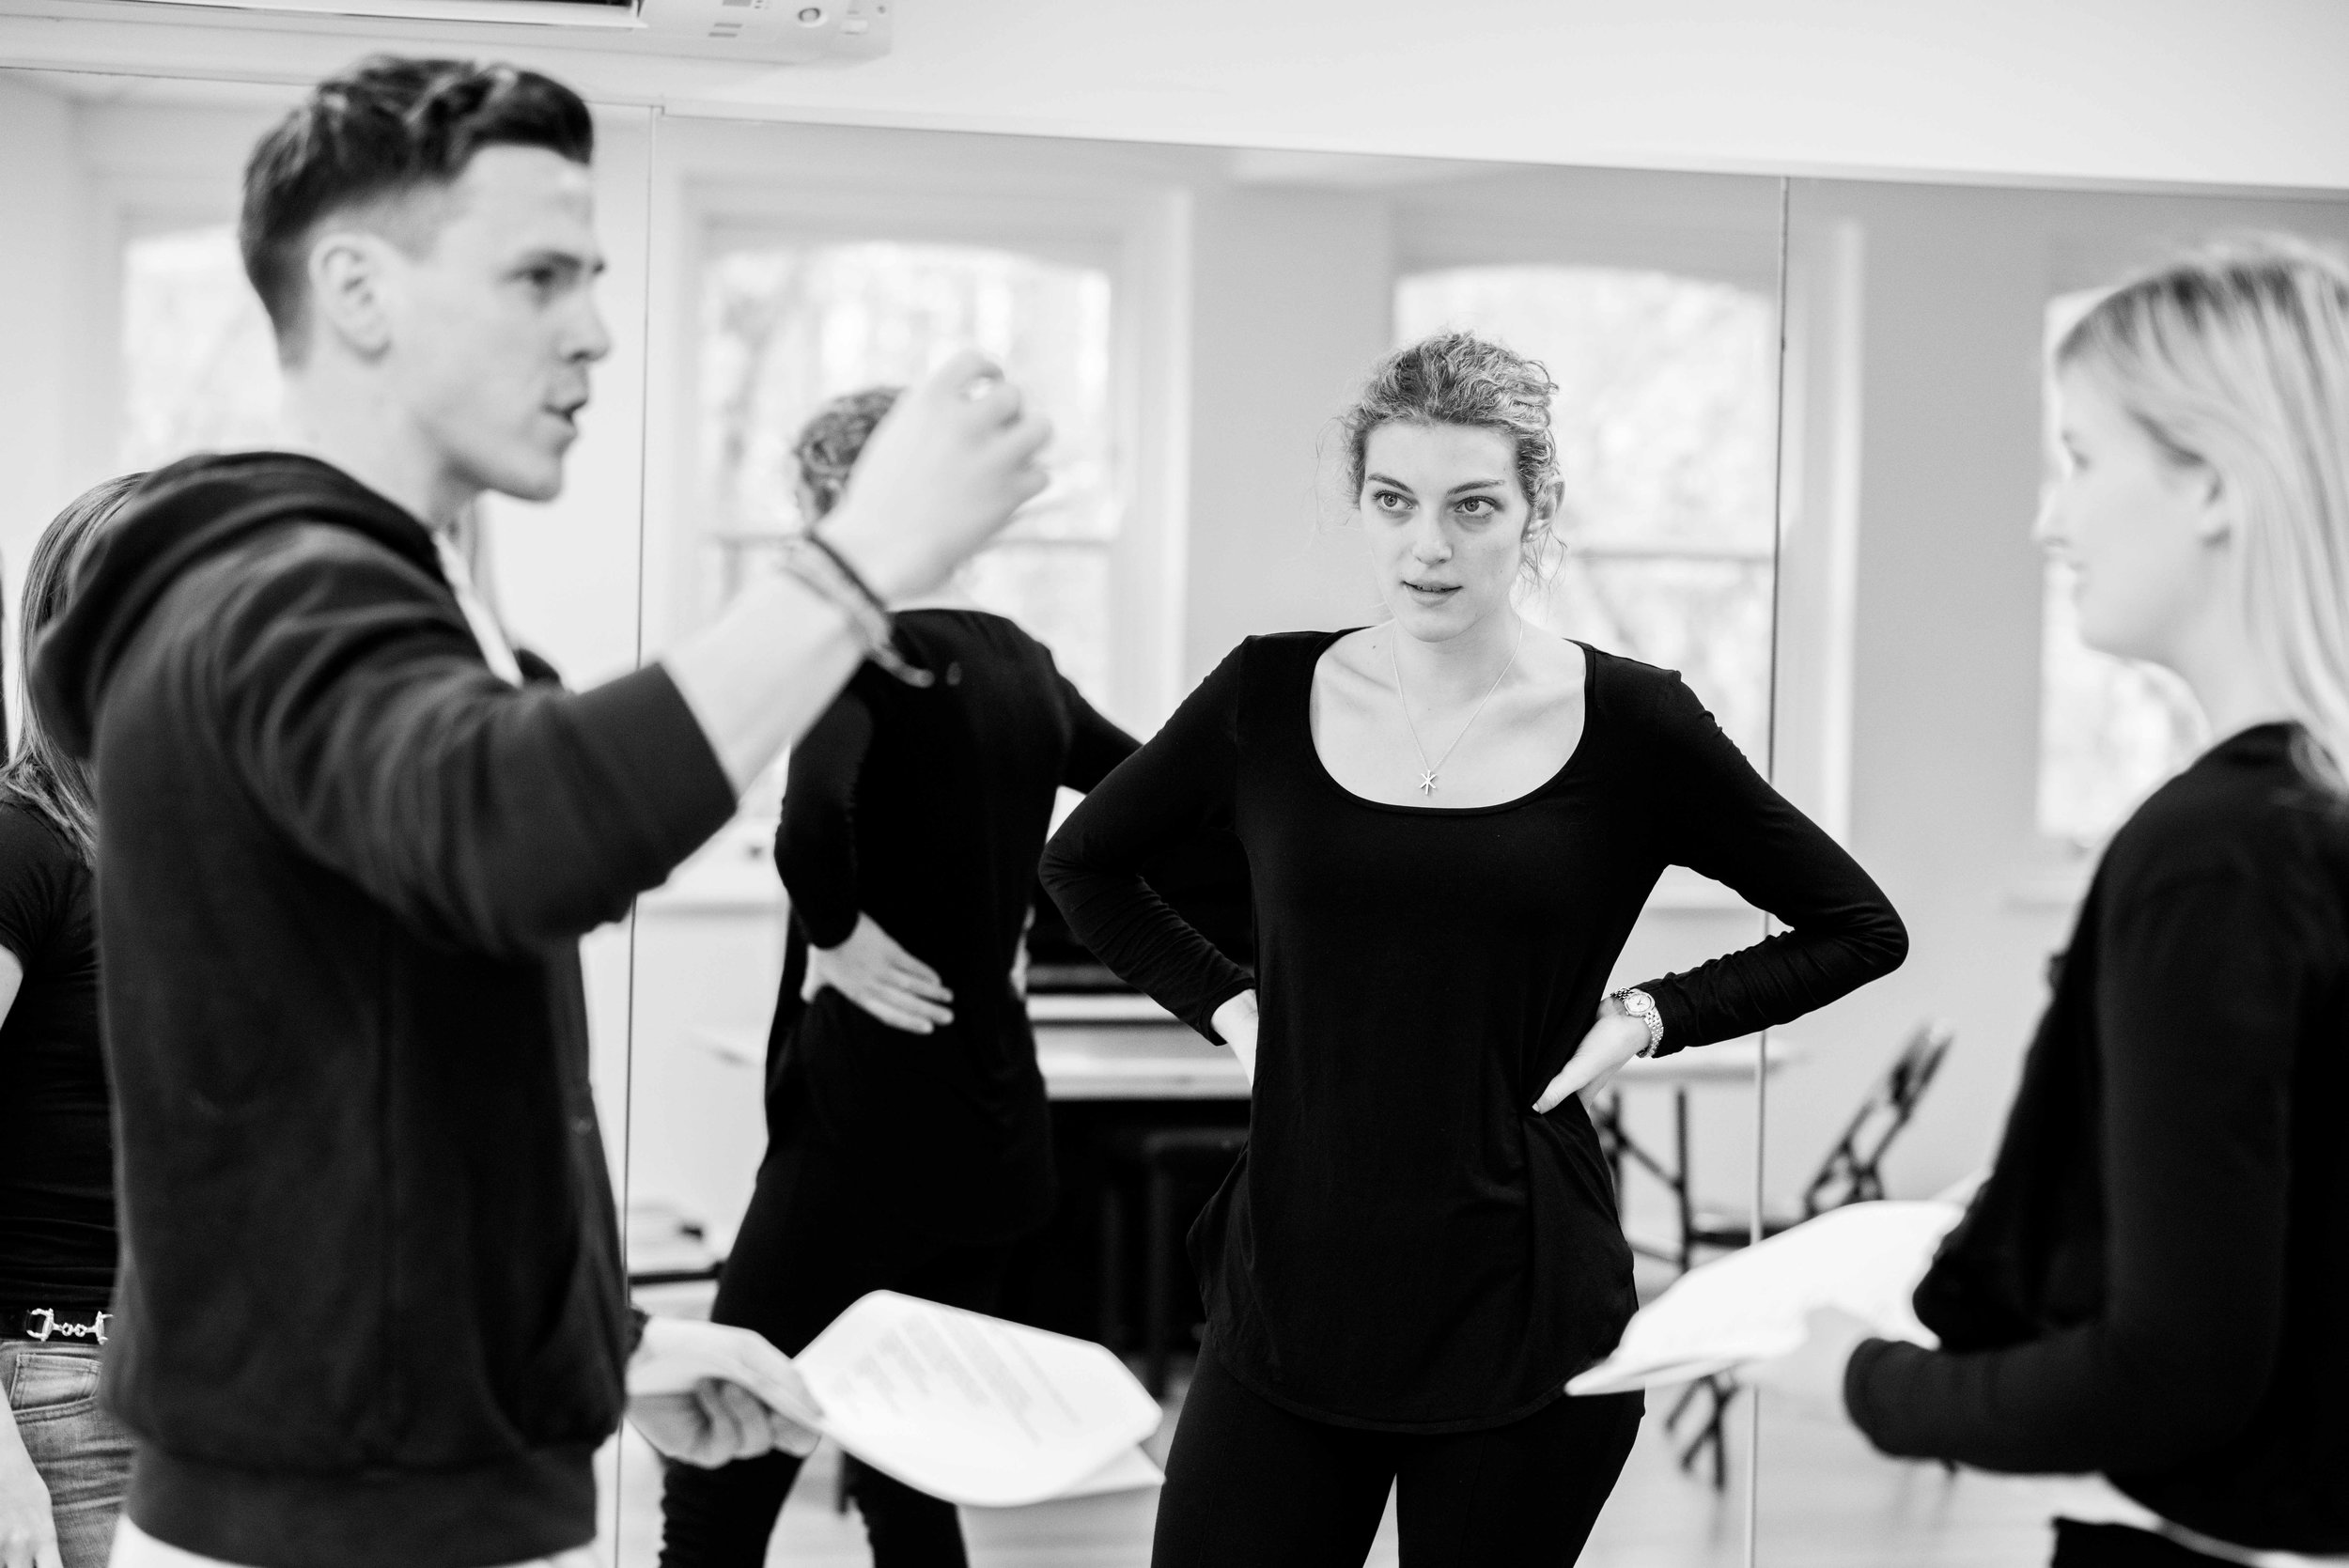 CamillaGreenwell_MEIWES-BRANDES_Rehearsals_5961-LOWRES.jpg